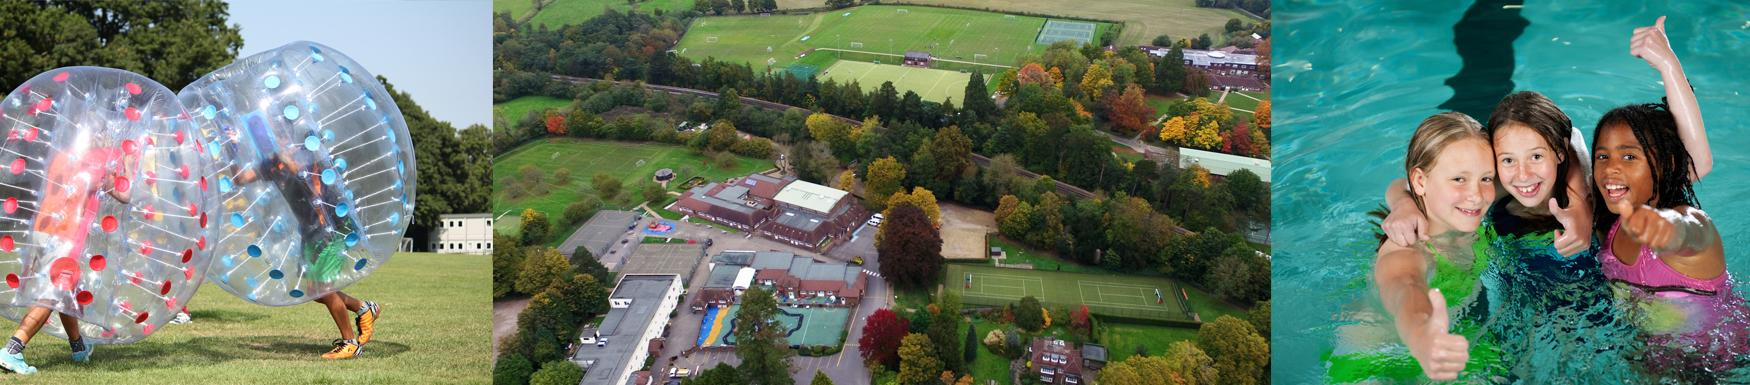 Lingfield College - near East Grinstead